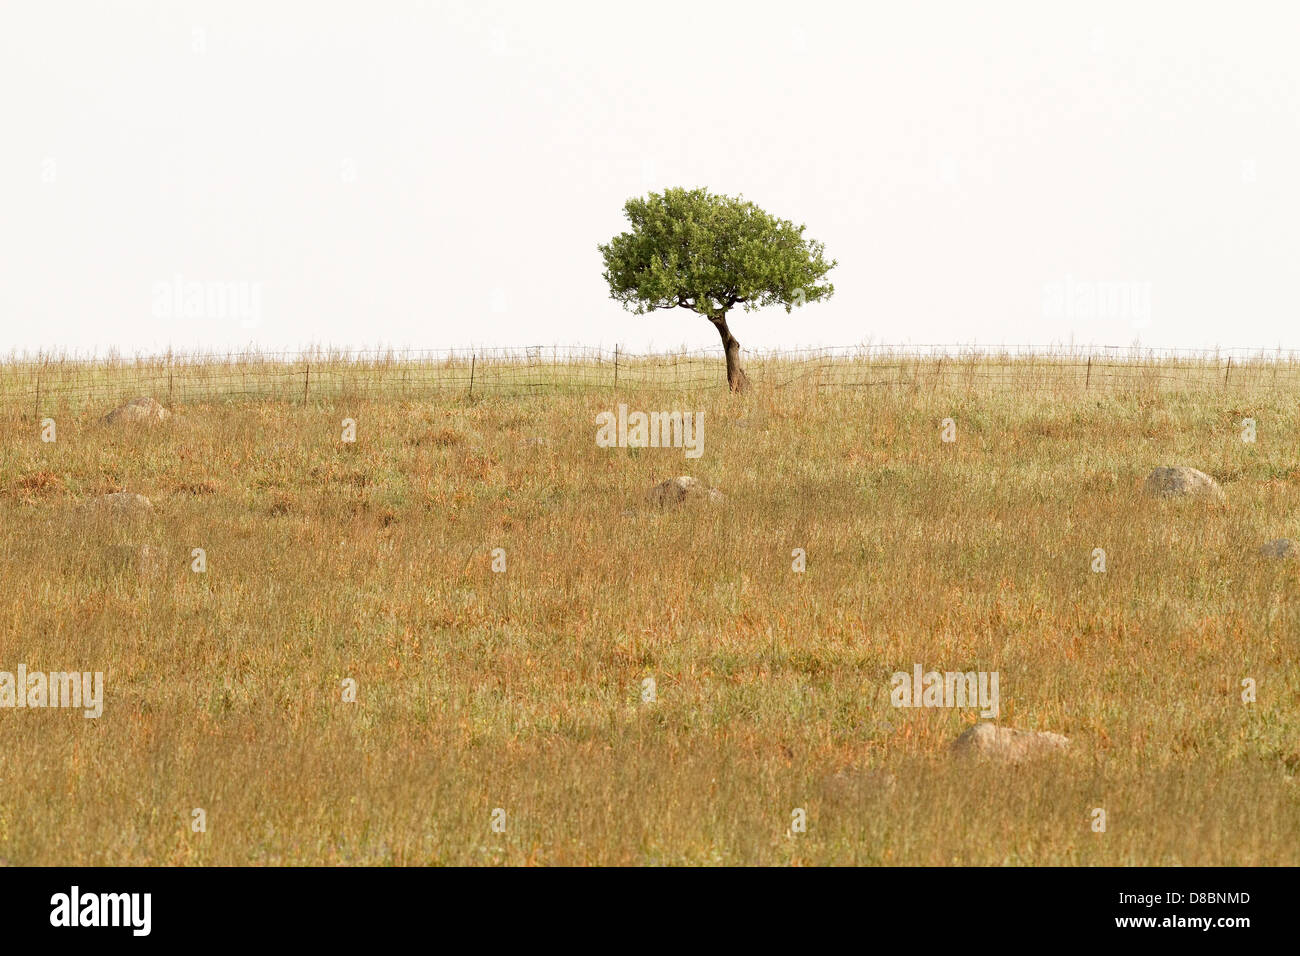 A tree standing lonely in a dried-grass field in the island of Lesvos, Greece - Stock Image